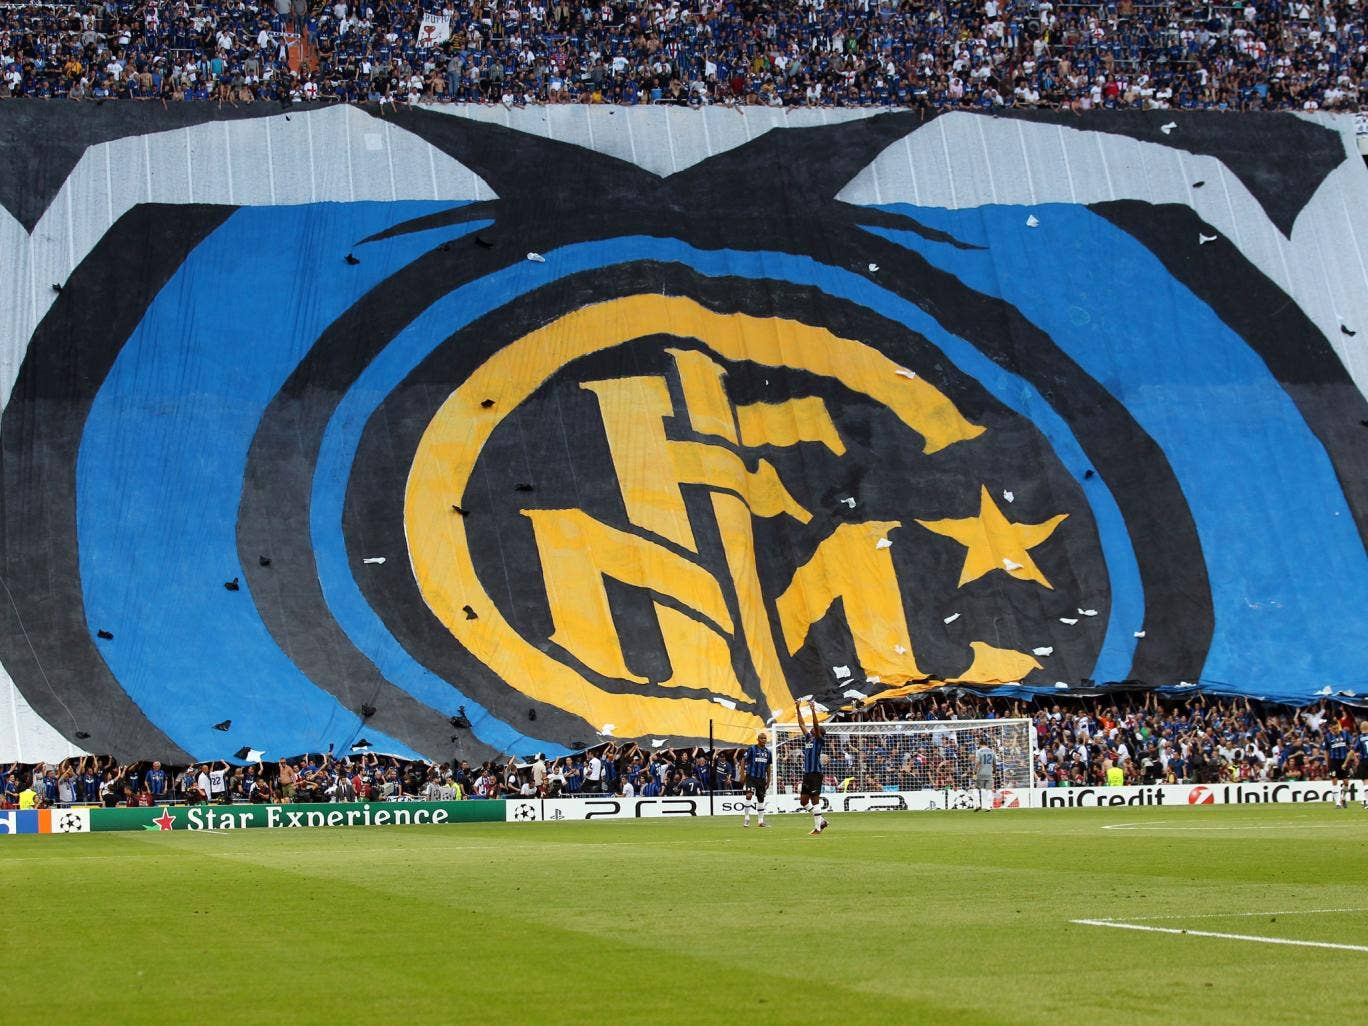 A general view of Inter Milan fans